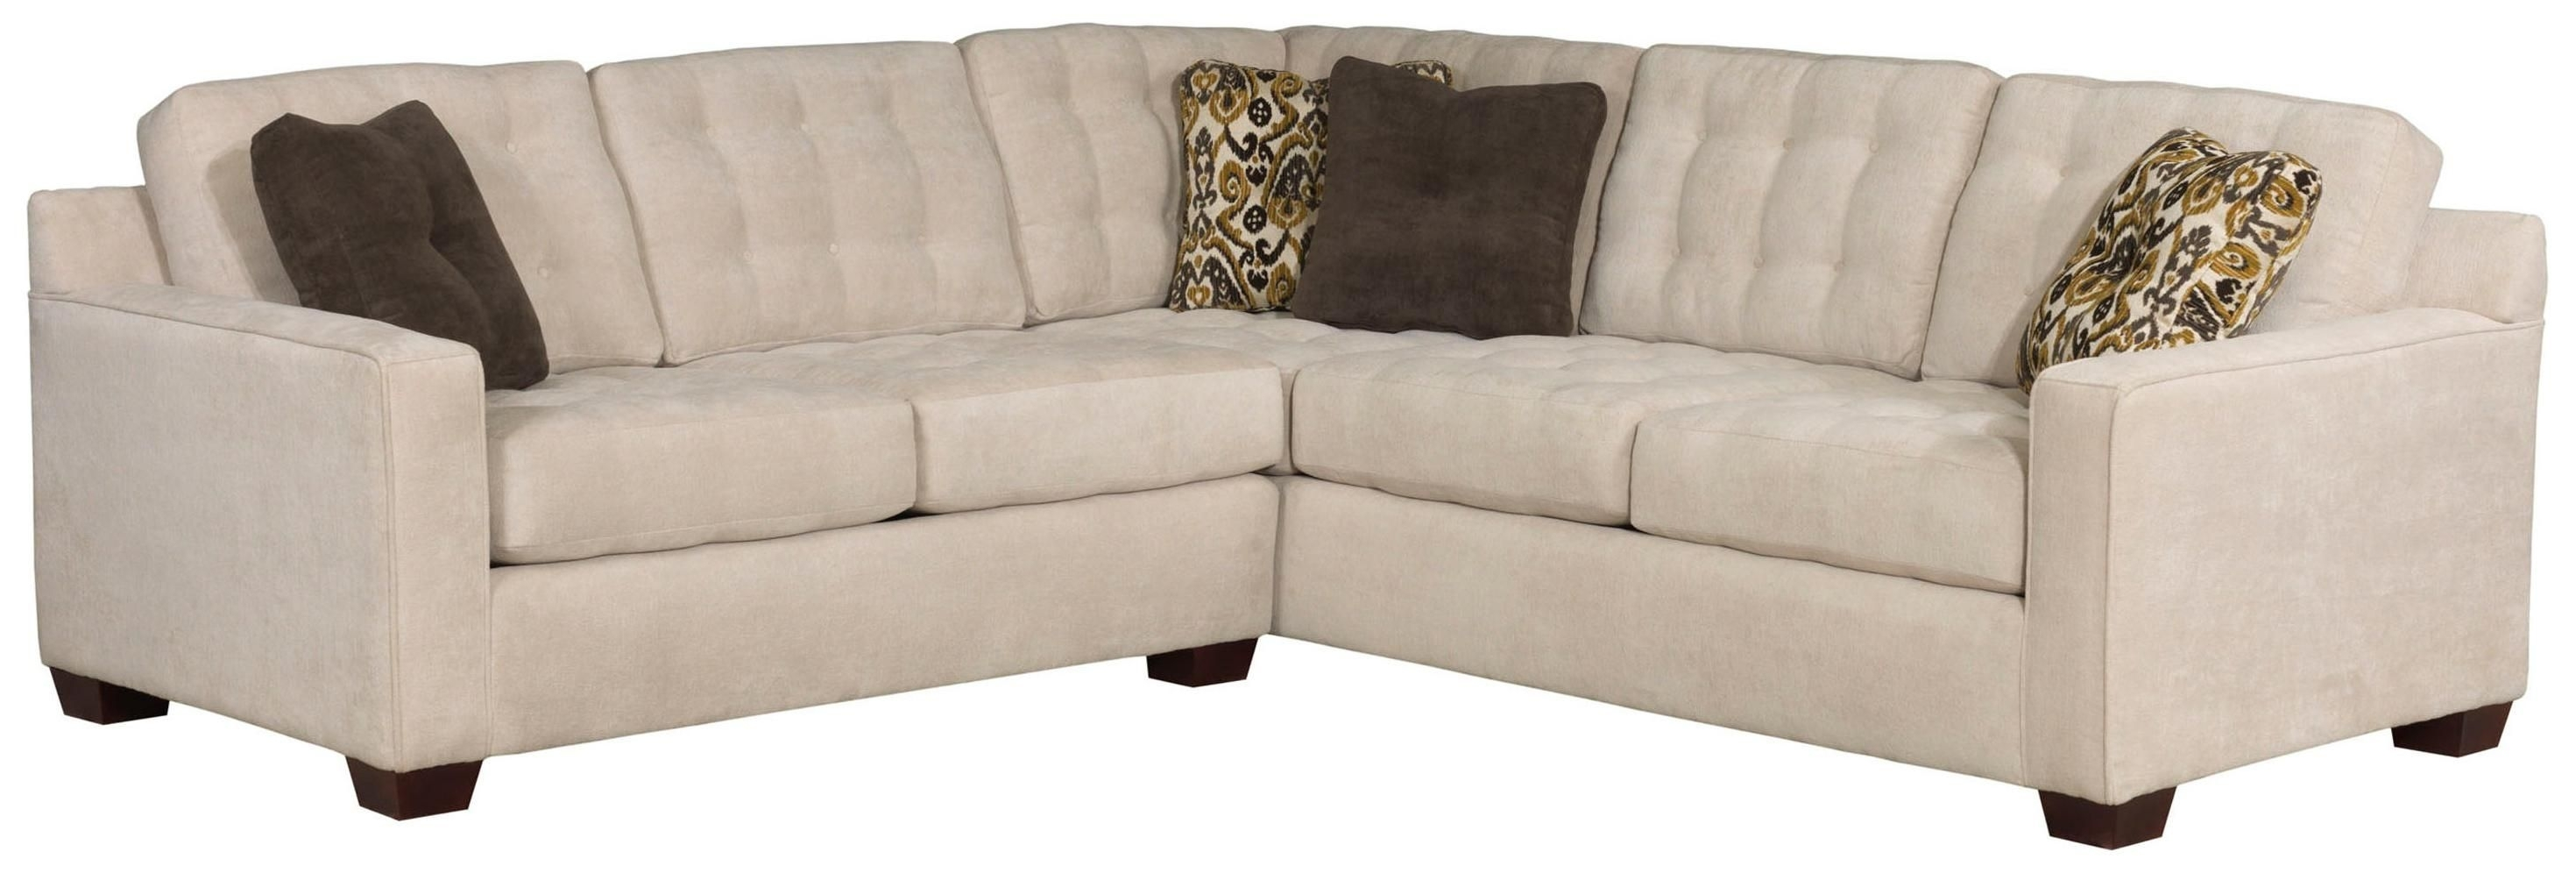 Tribeca Sectional Sofabroyhill Furniture #hudsonsfurniture in Sectional Sofas at Broyhill (Image 15 of 15)